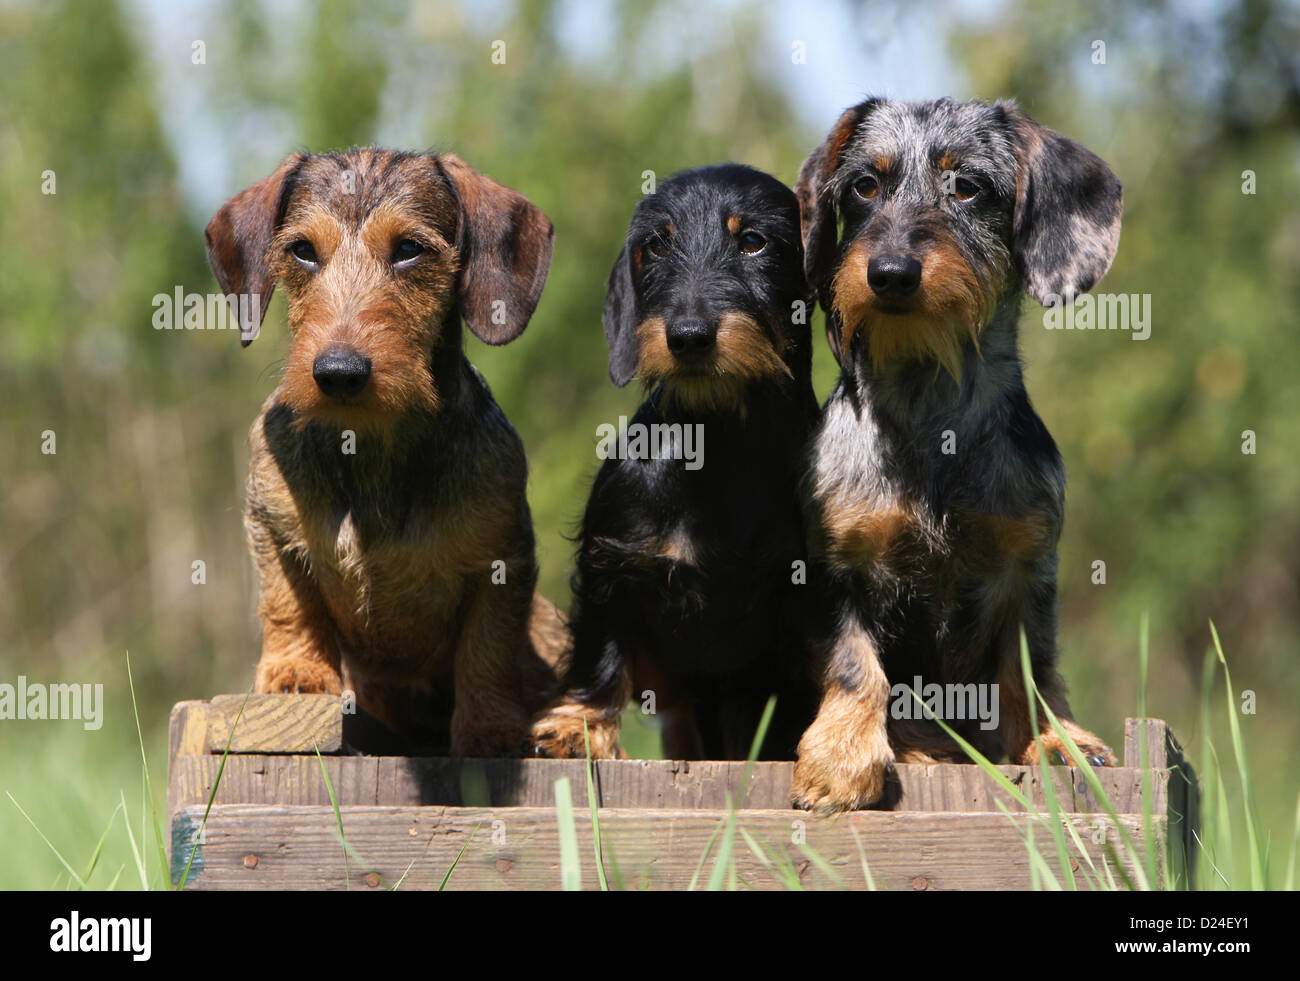 Dog Dachshund Dackel Teckel Wirehaired Three Adults Different